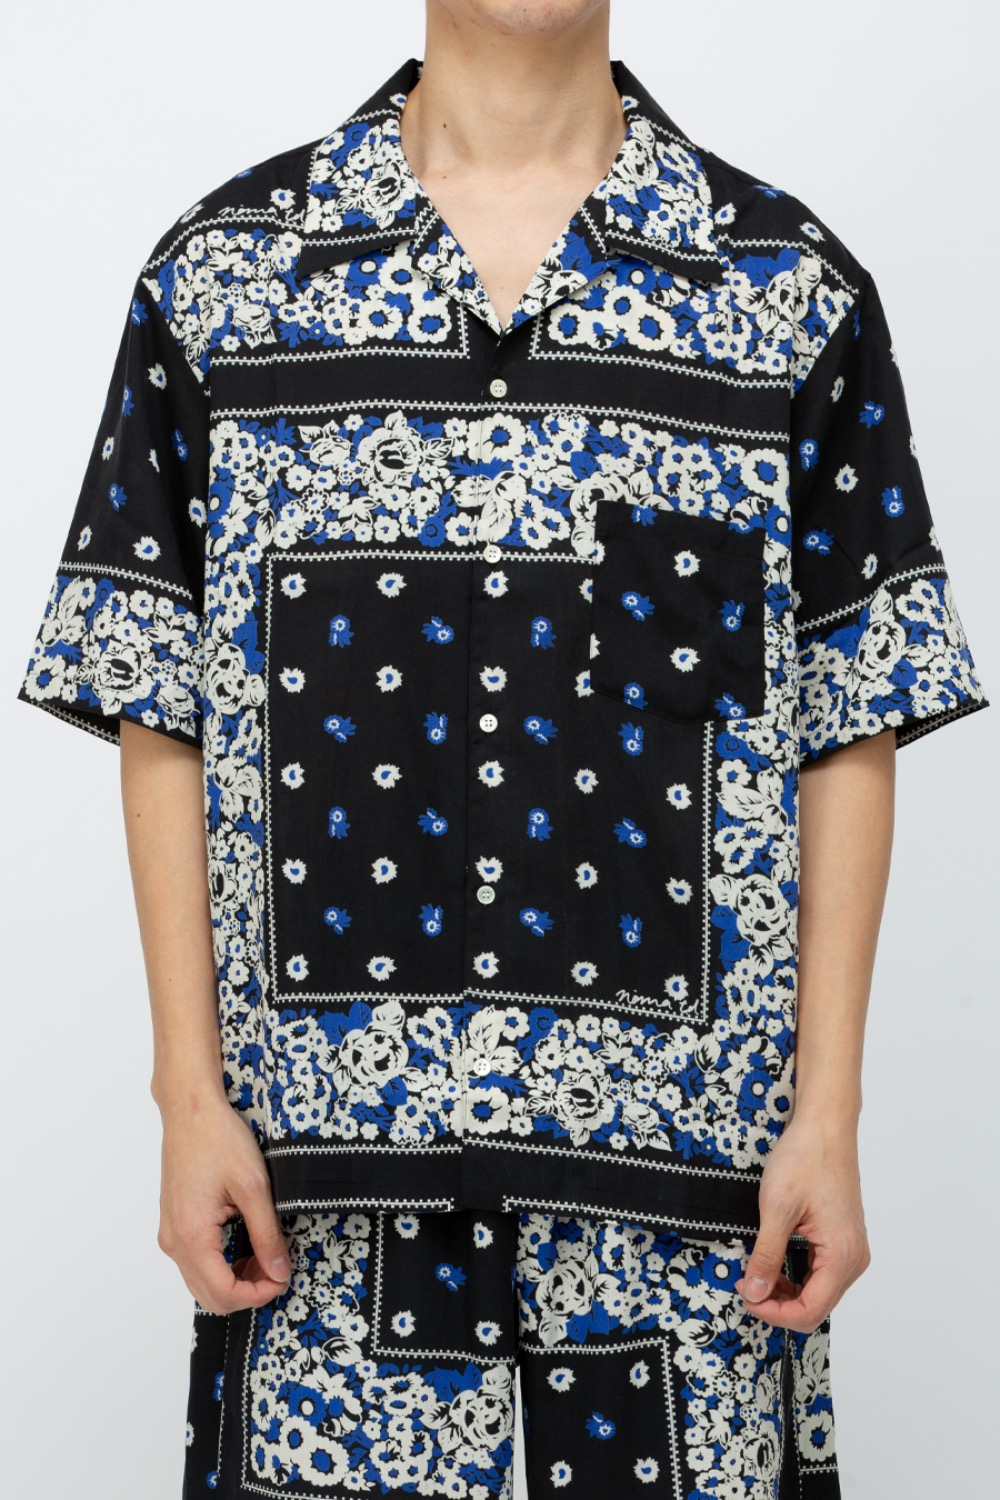 SUMMER SHIRT DYG BLACK